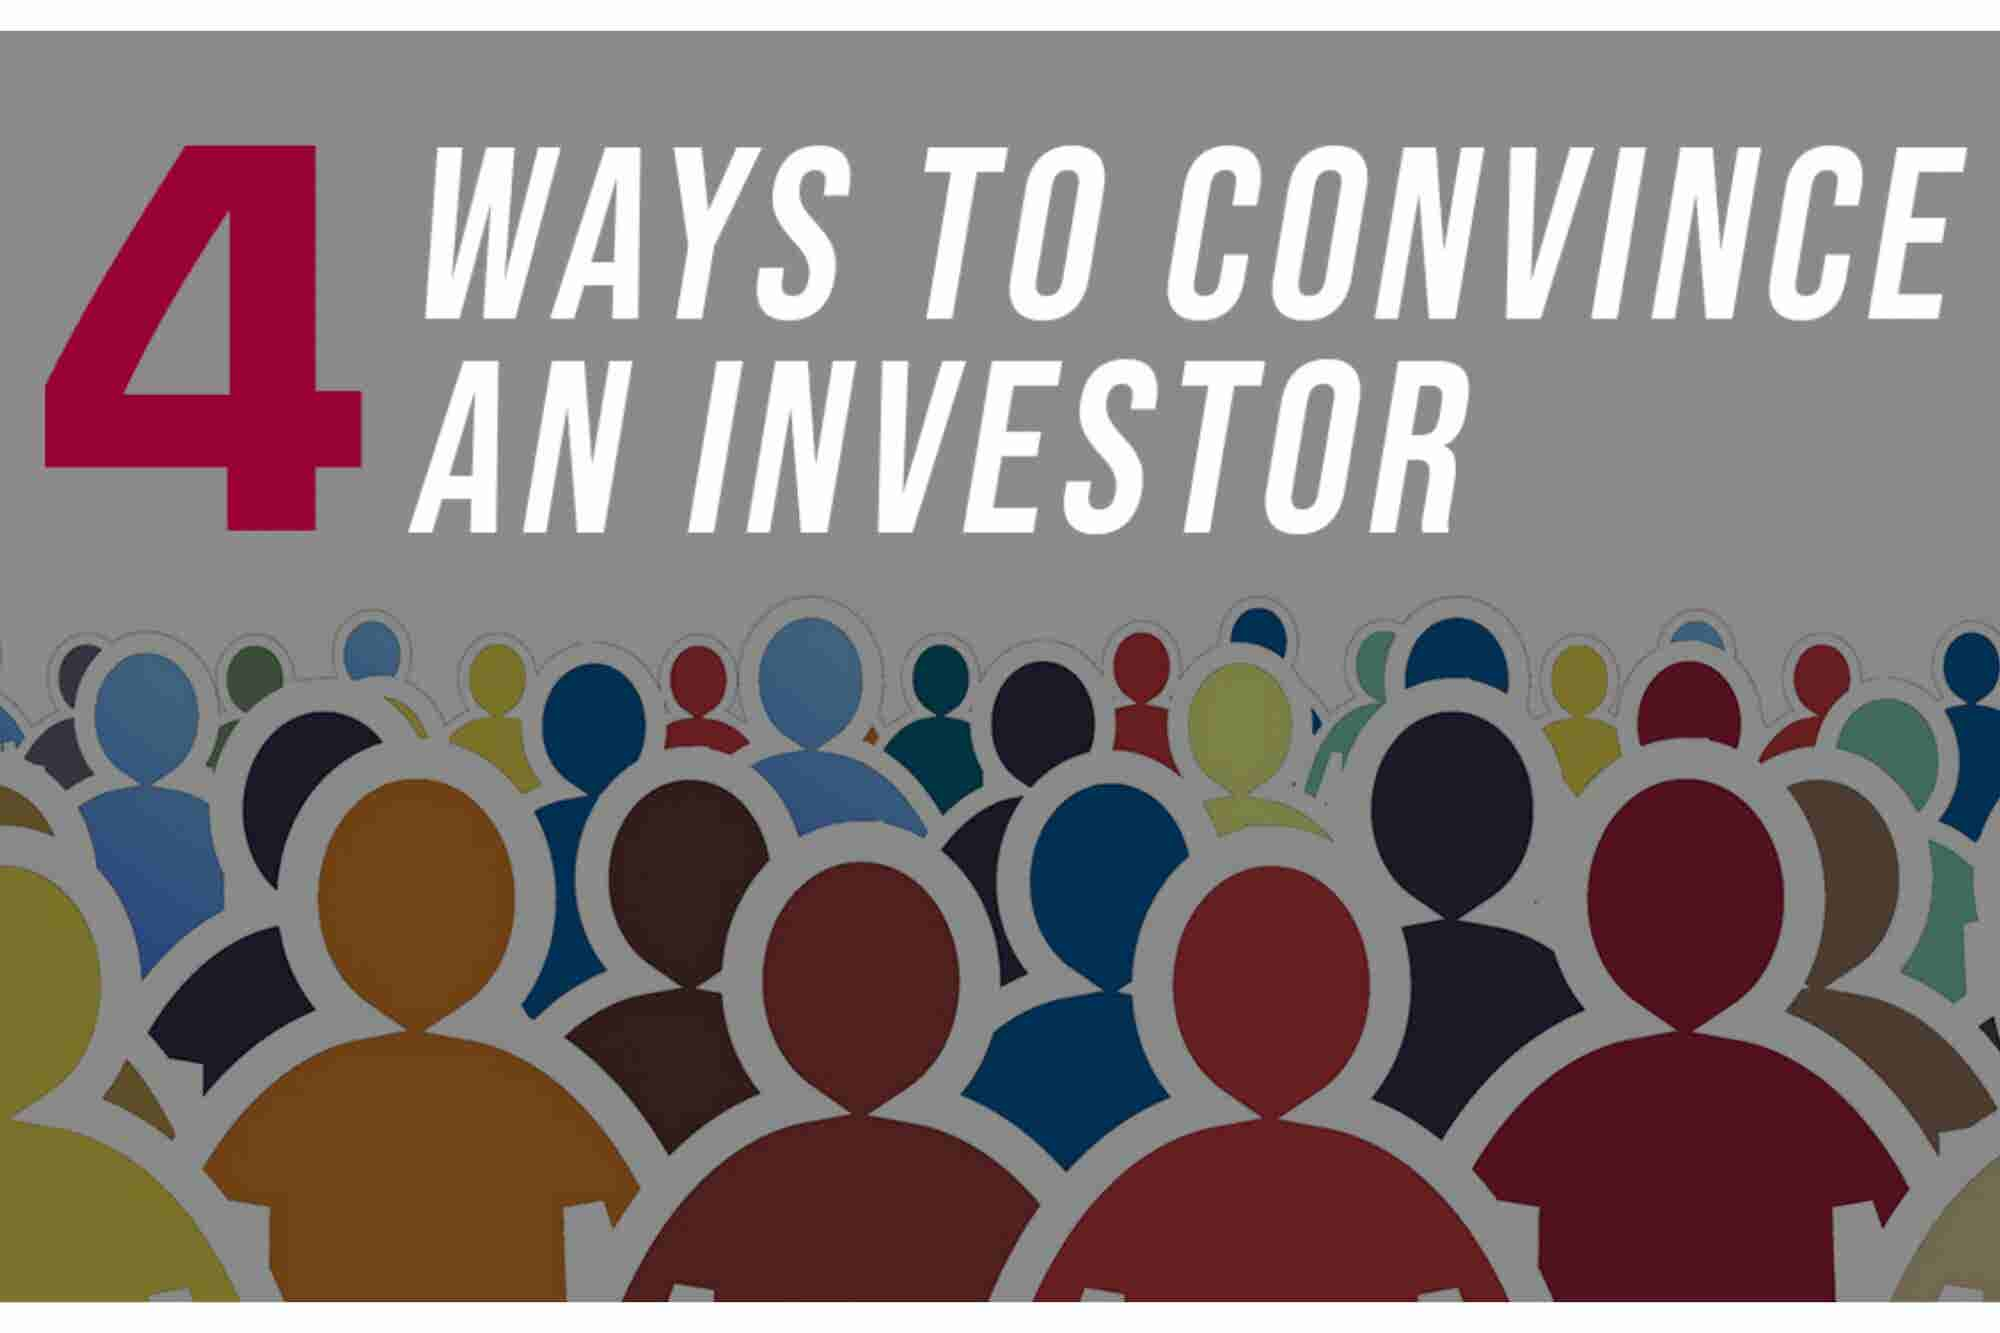 4 Things to Keep In Mind While Convincing an Investor to Fund Your Business Model